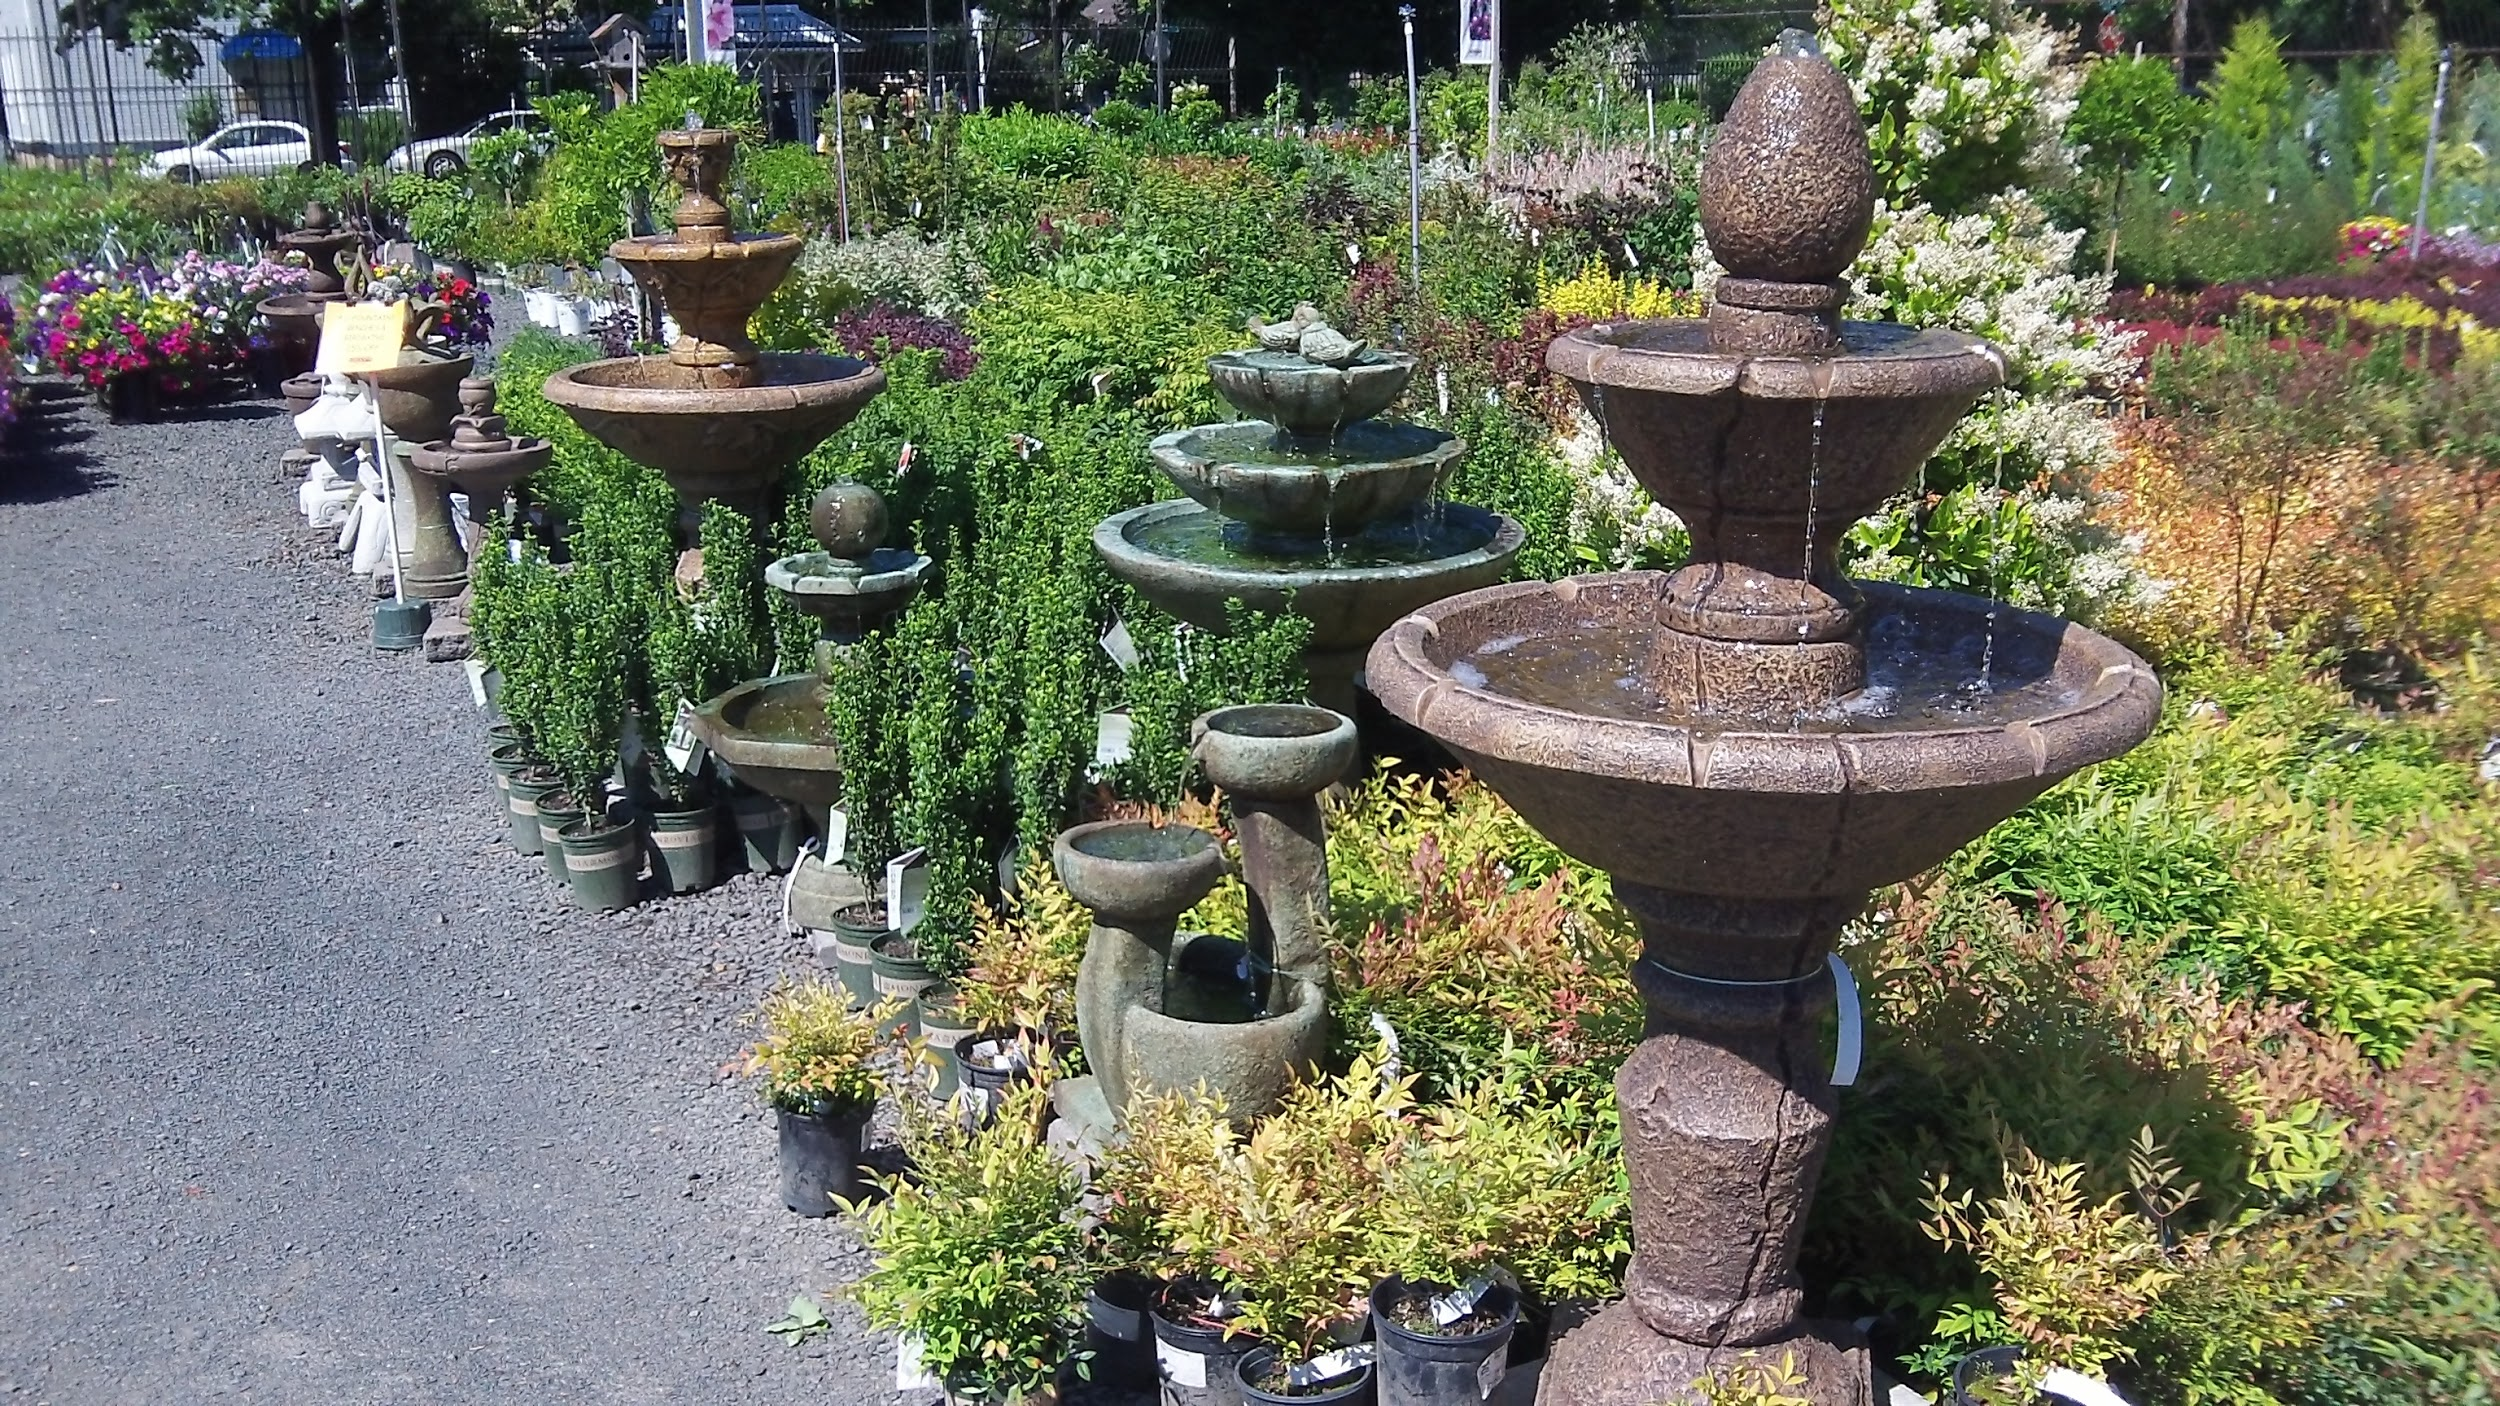 garden-fountains-statues.jpg